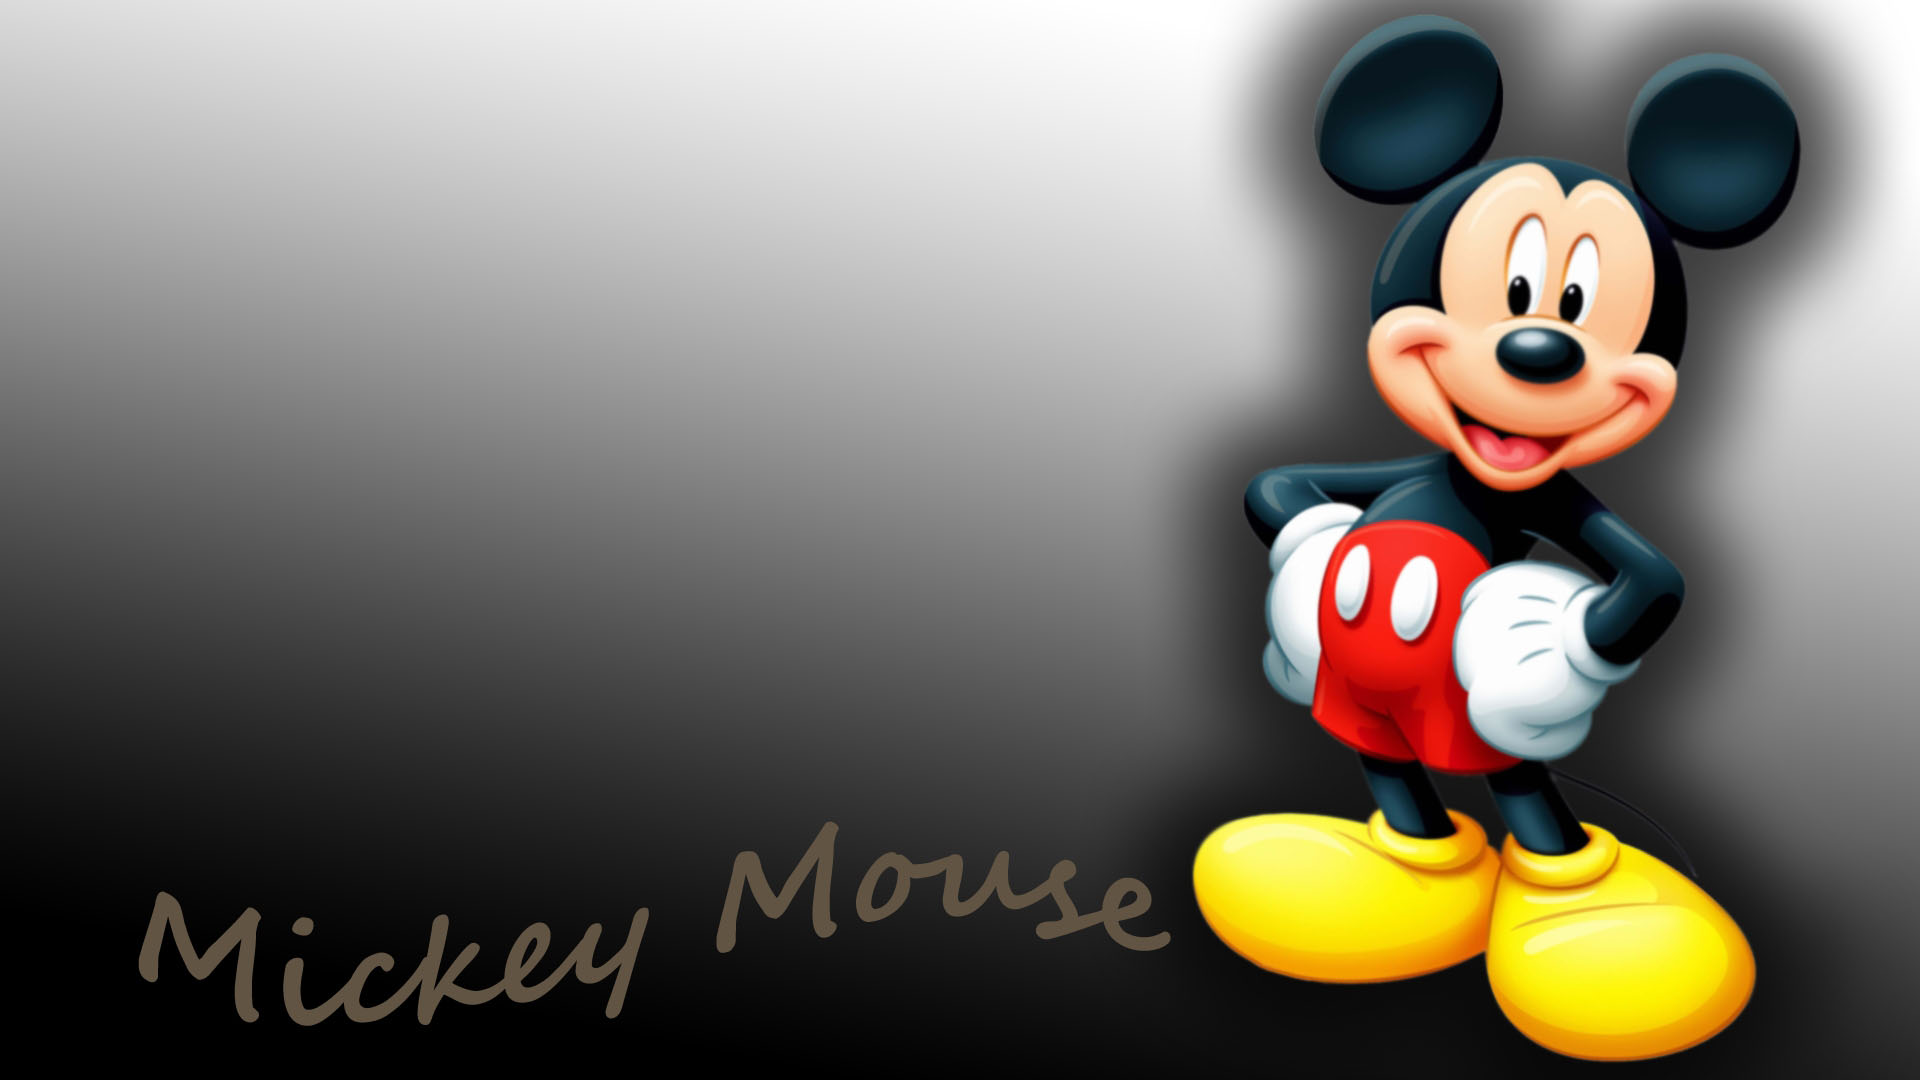 Mickey Mouse Latest HD Wallpapers  Download 1920x1080